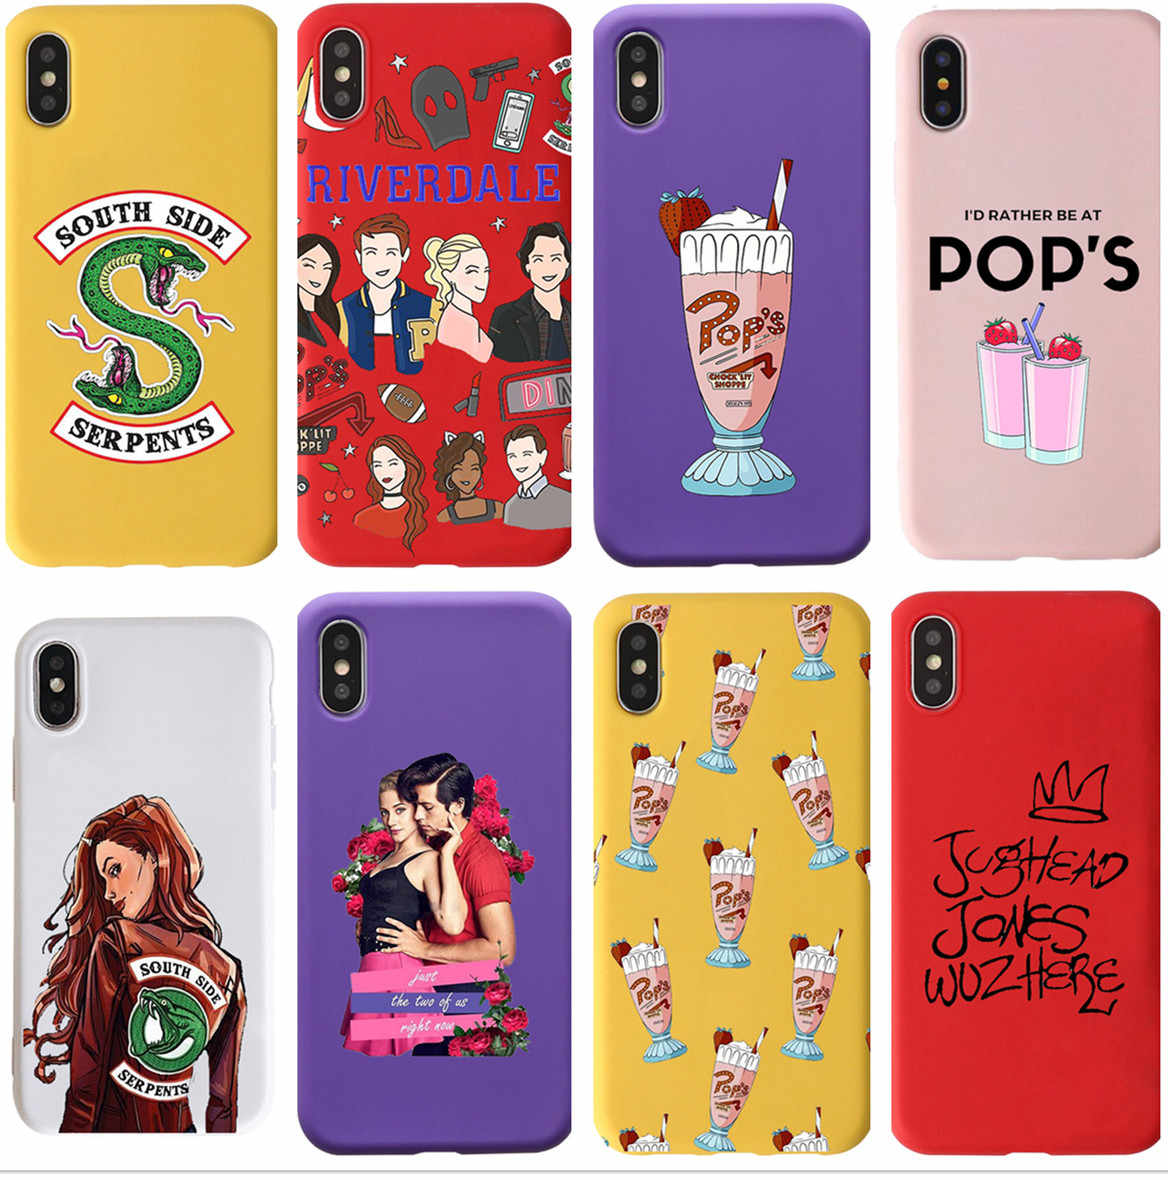 American TV Riverdale Jughead Jones style soft Silicone Cover Candy colors phone Case For iPhone 6 7 6s 8 8Plus X XR XS MAX